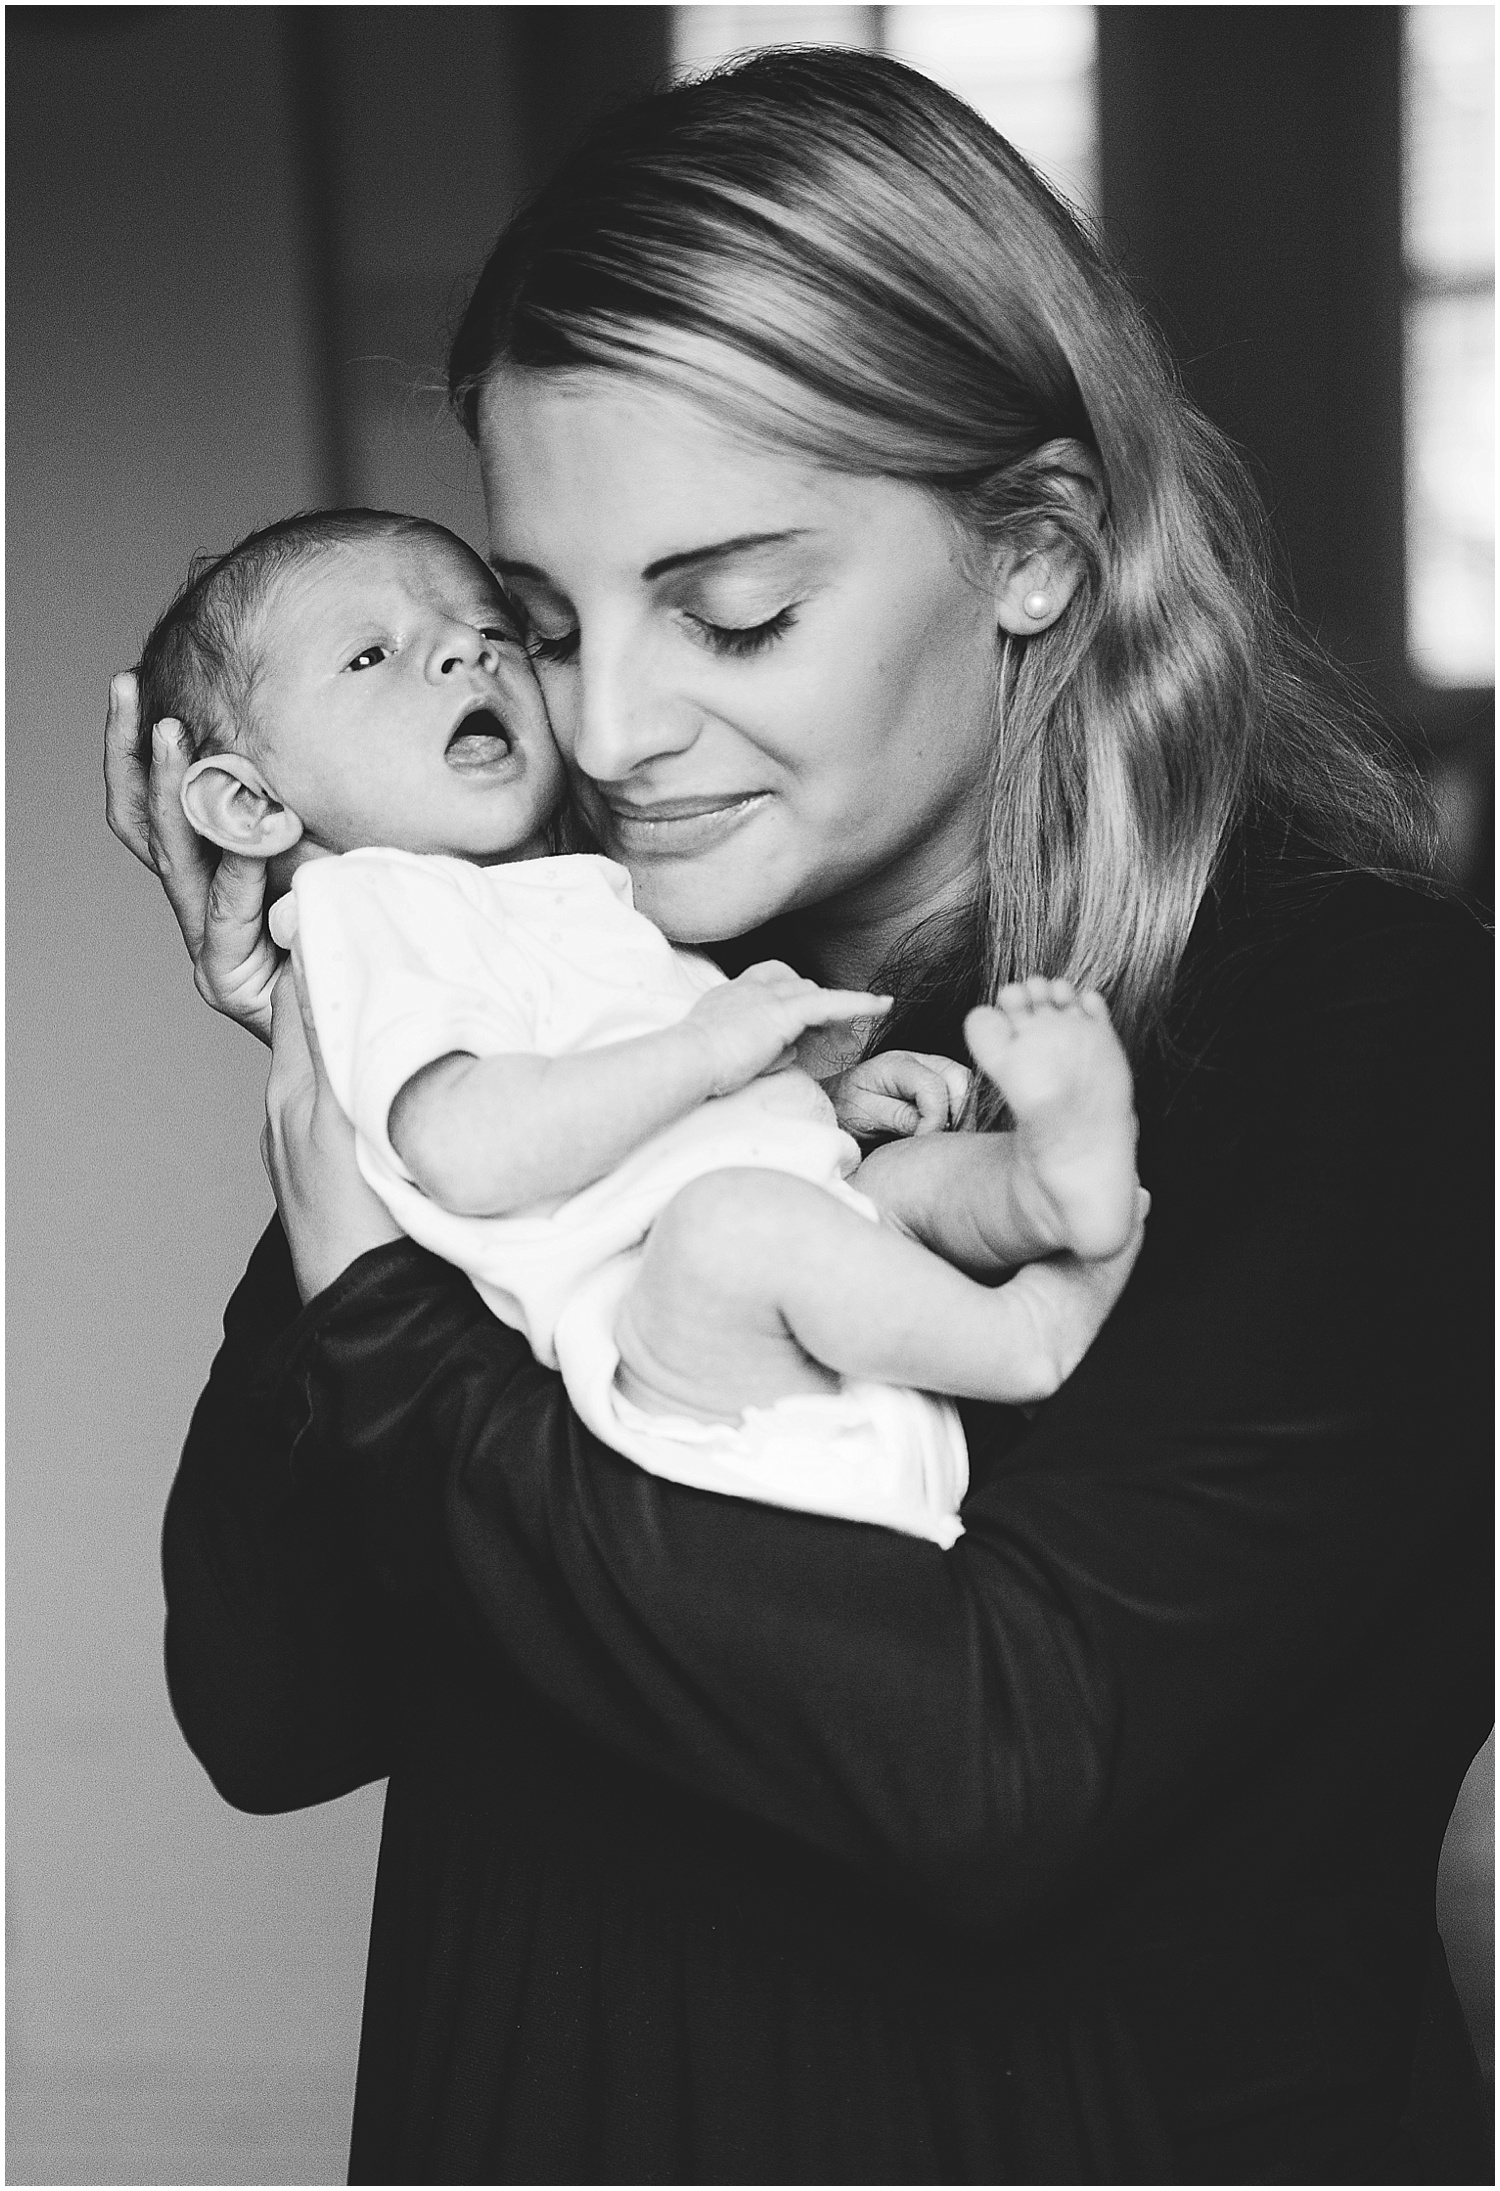 mother and newborn baby photography black and white Whitstable, Kent